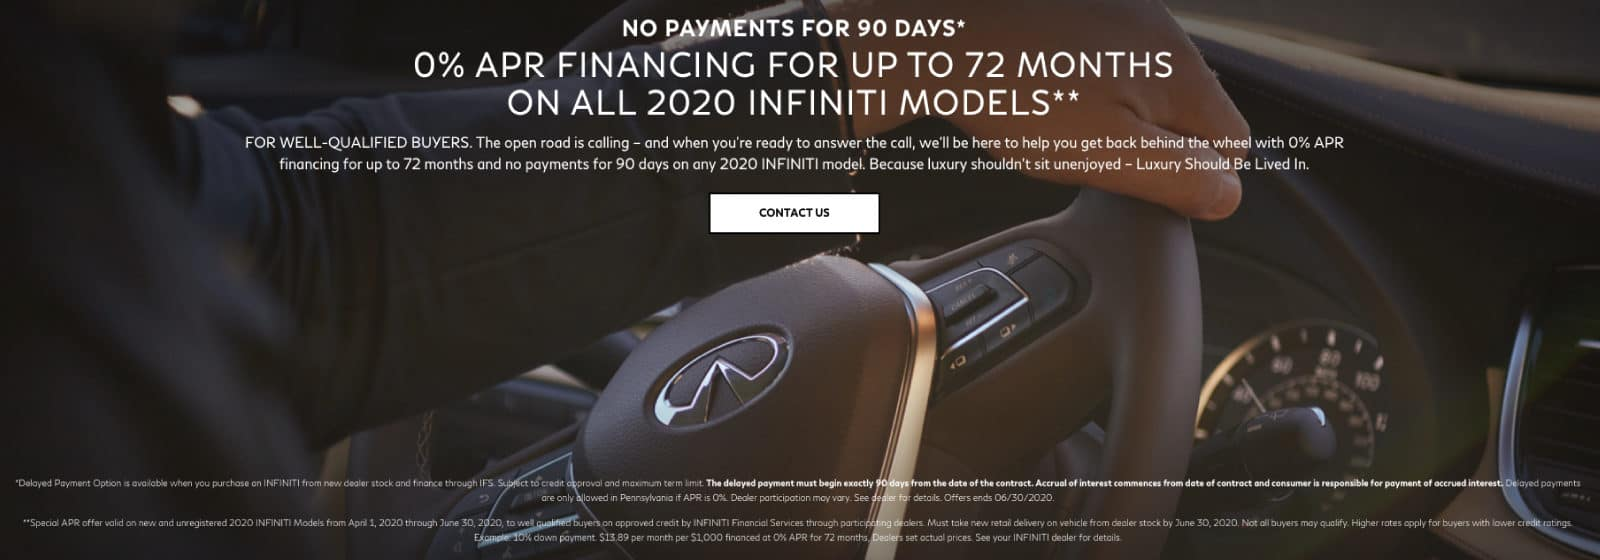 Get Zero Percent financing for 72mos at No Payments for 90 days on ALL NEW INFINITI MODELS